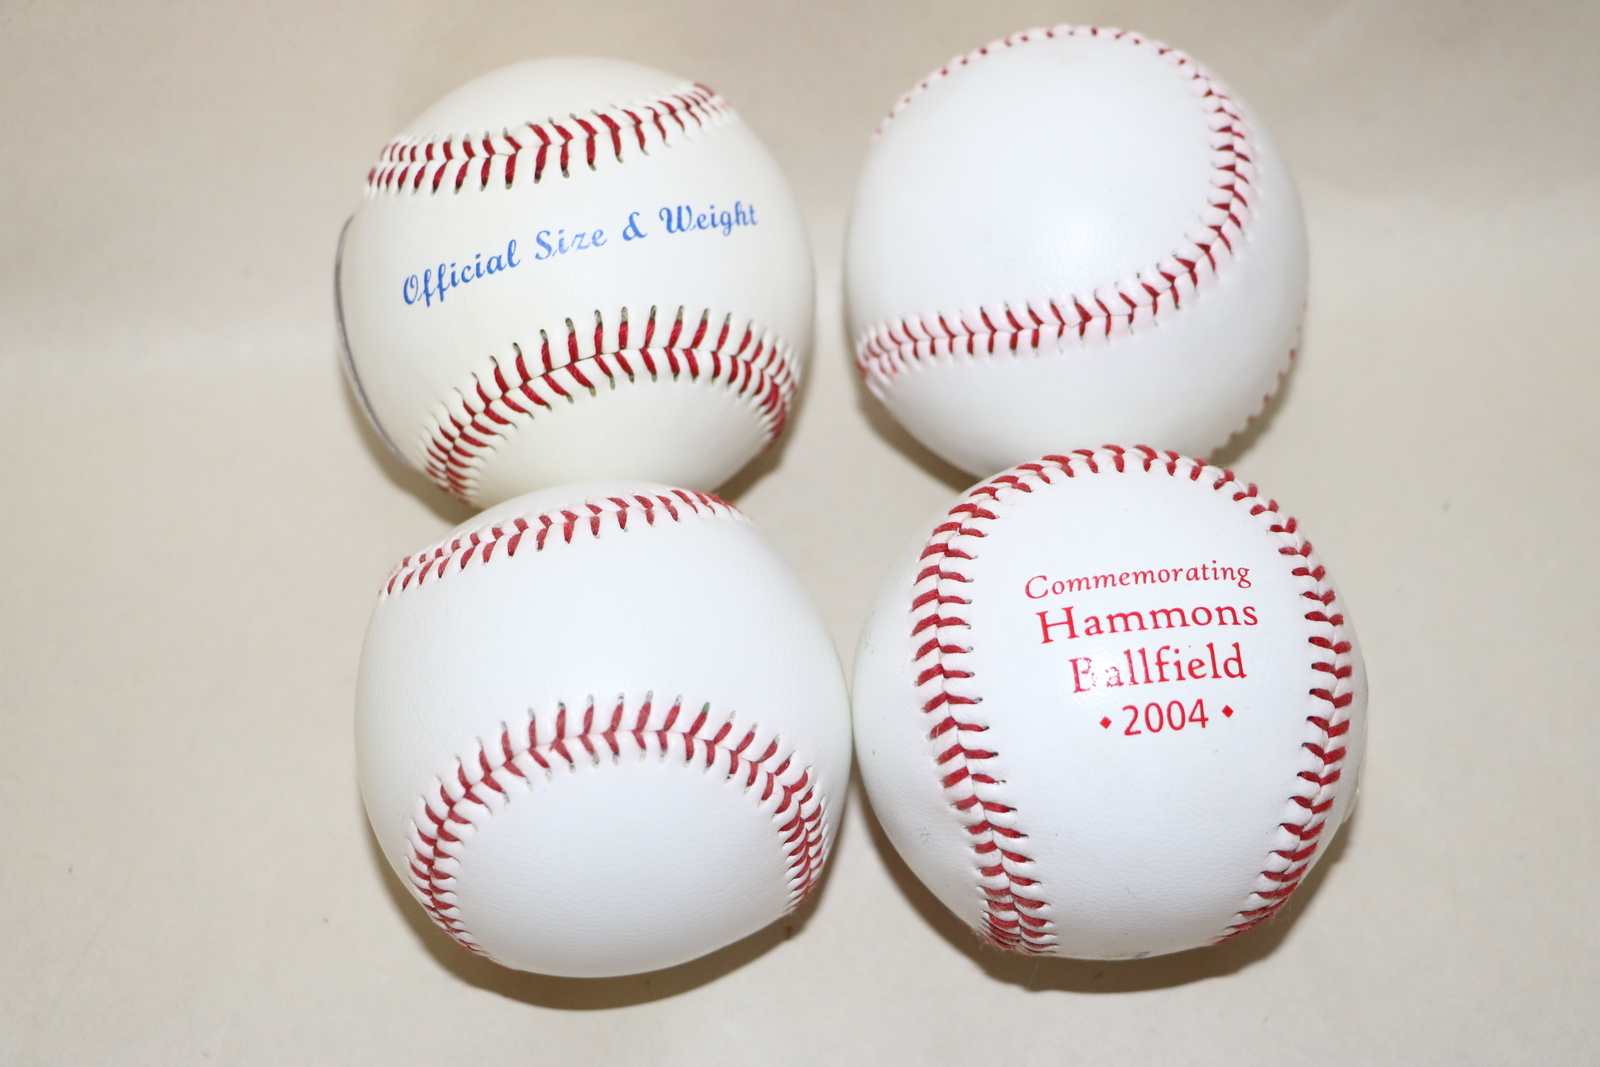 Lot of 4 Baseballs - Mixed Lot - Hammons Commemorative Ballfield 2004